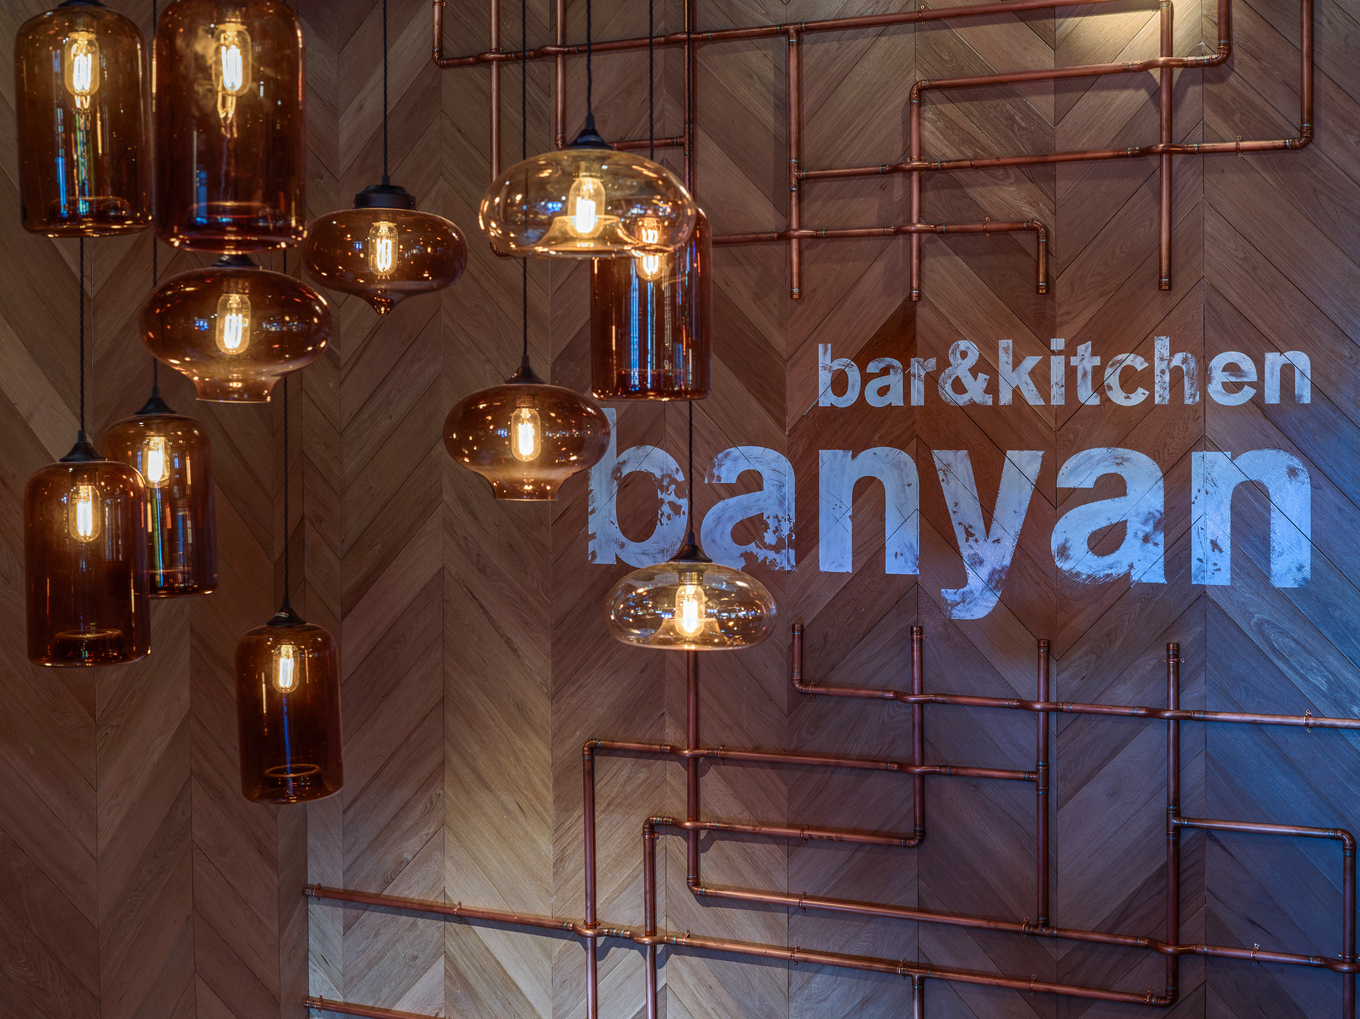 Banyan Bar & Kitchen image 3